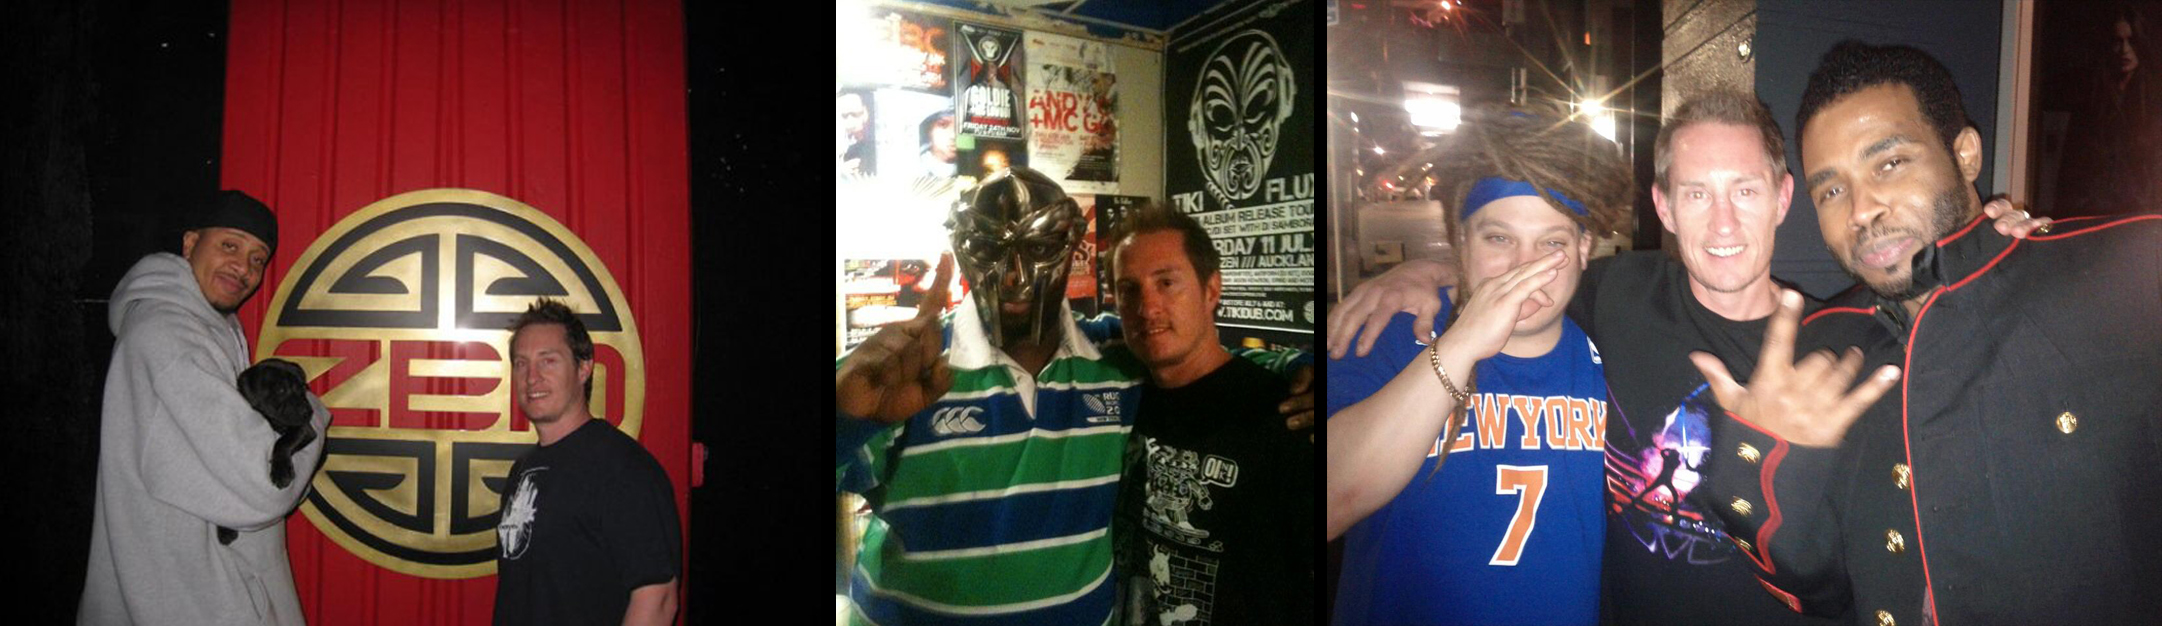 Above from left to right: Gareth with Chali2na, MF DOOM and Pharoah Monch.